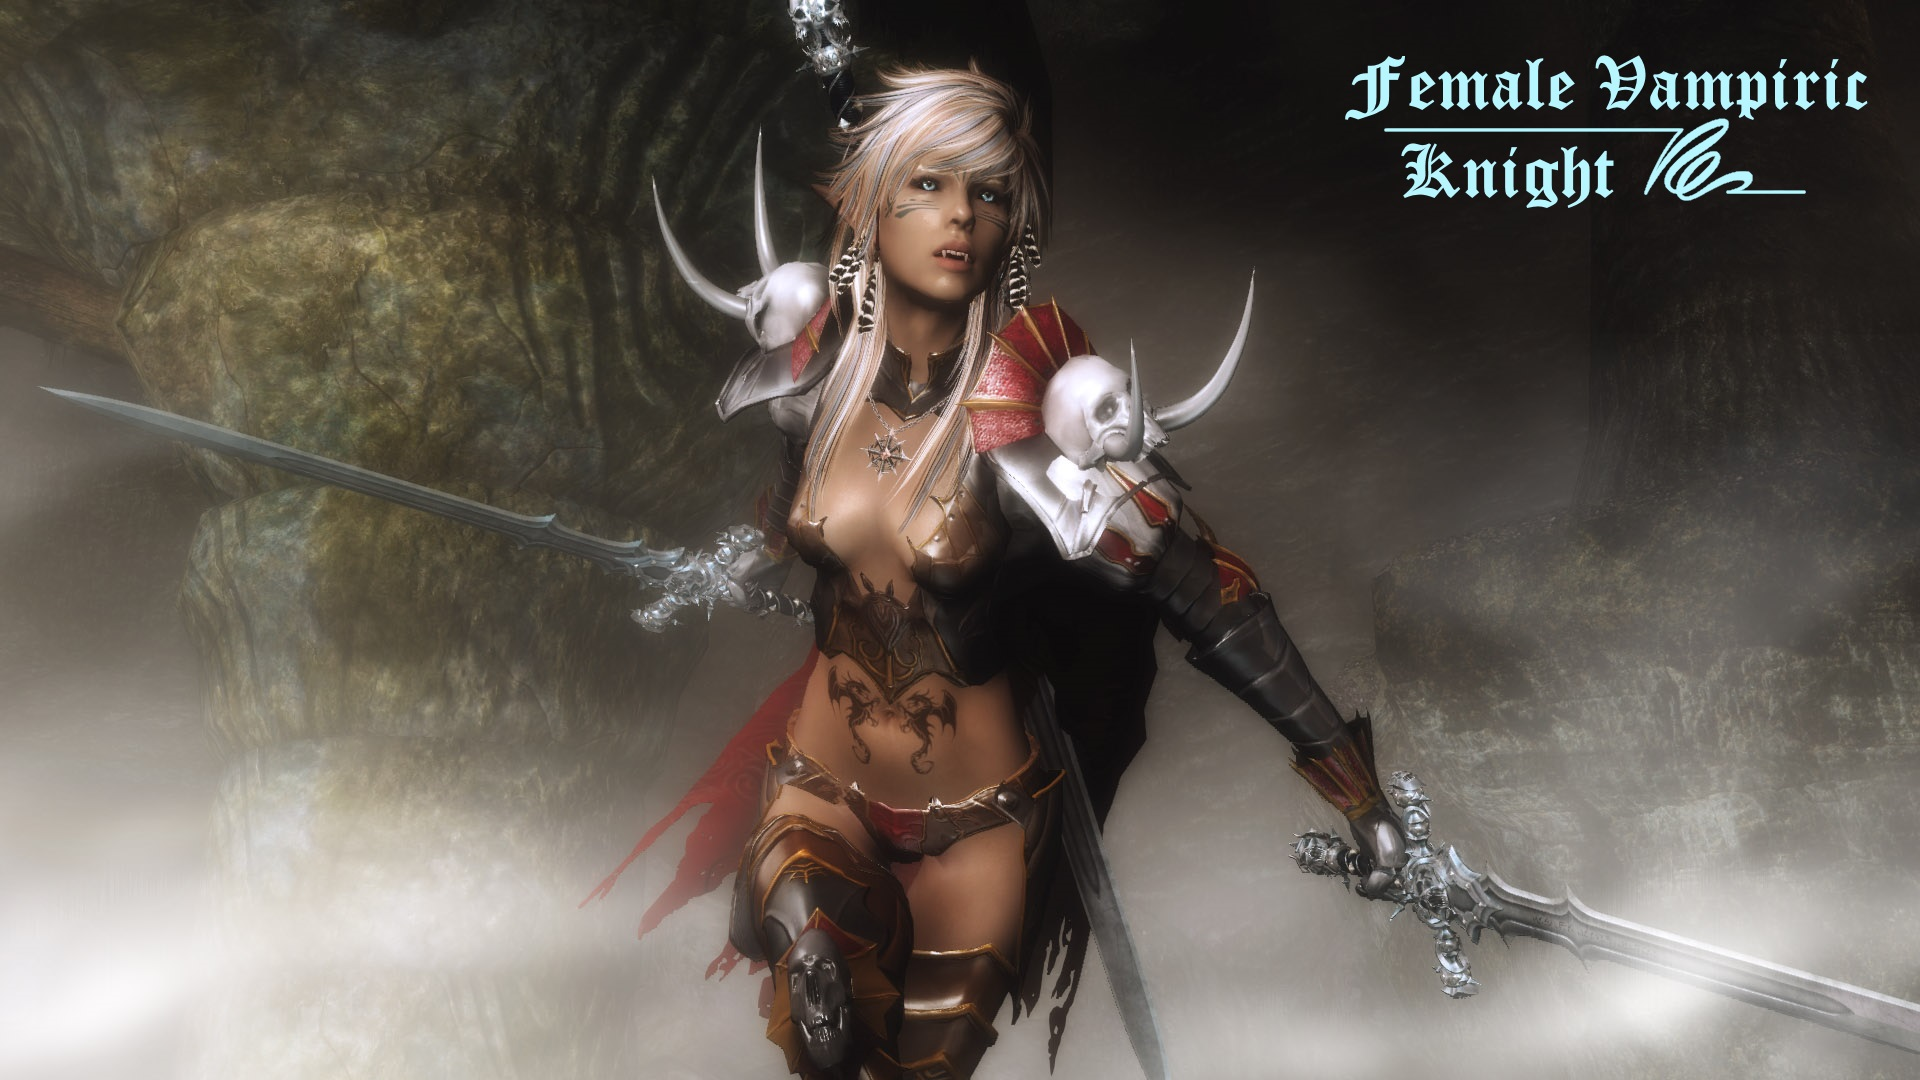 Female_Vampiric_Knight_00.jpg